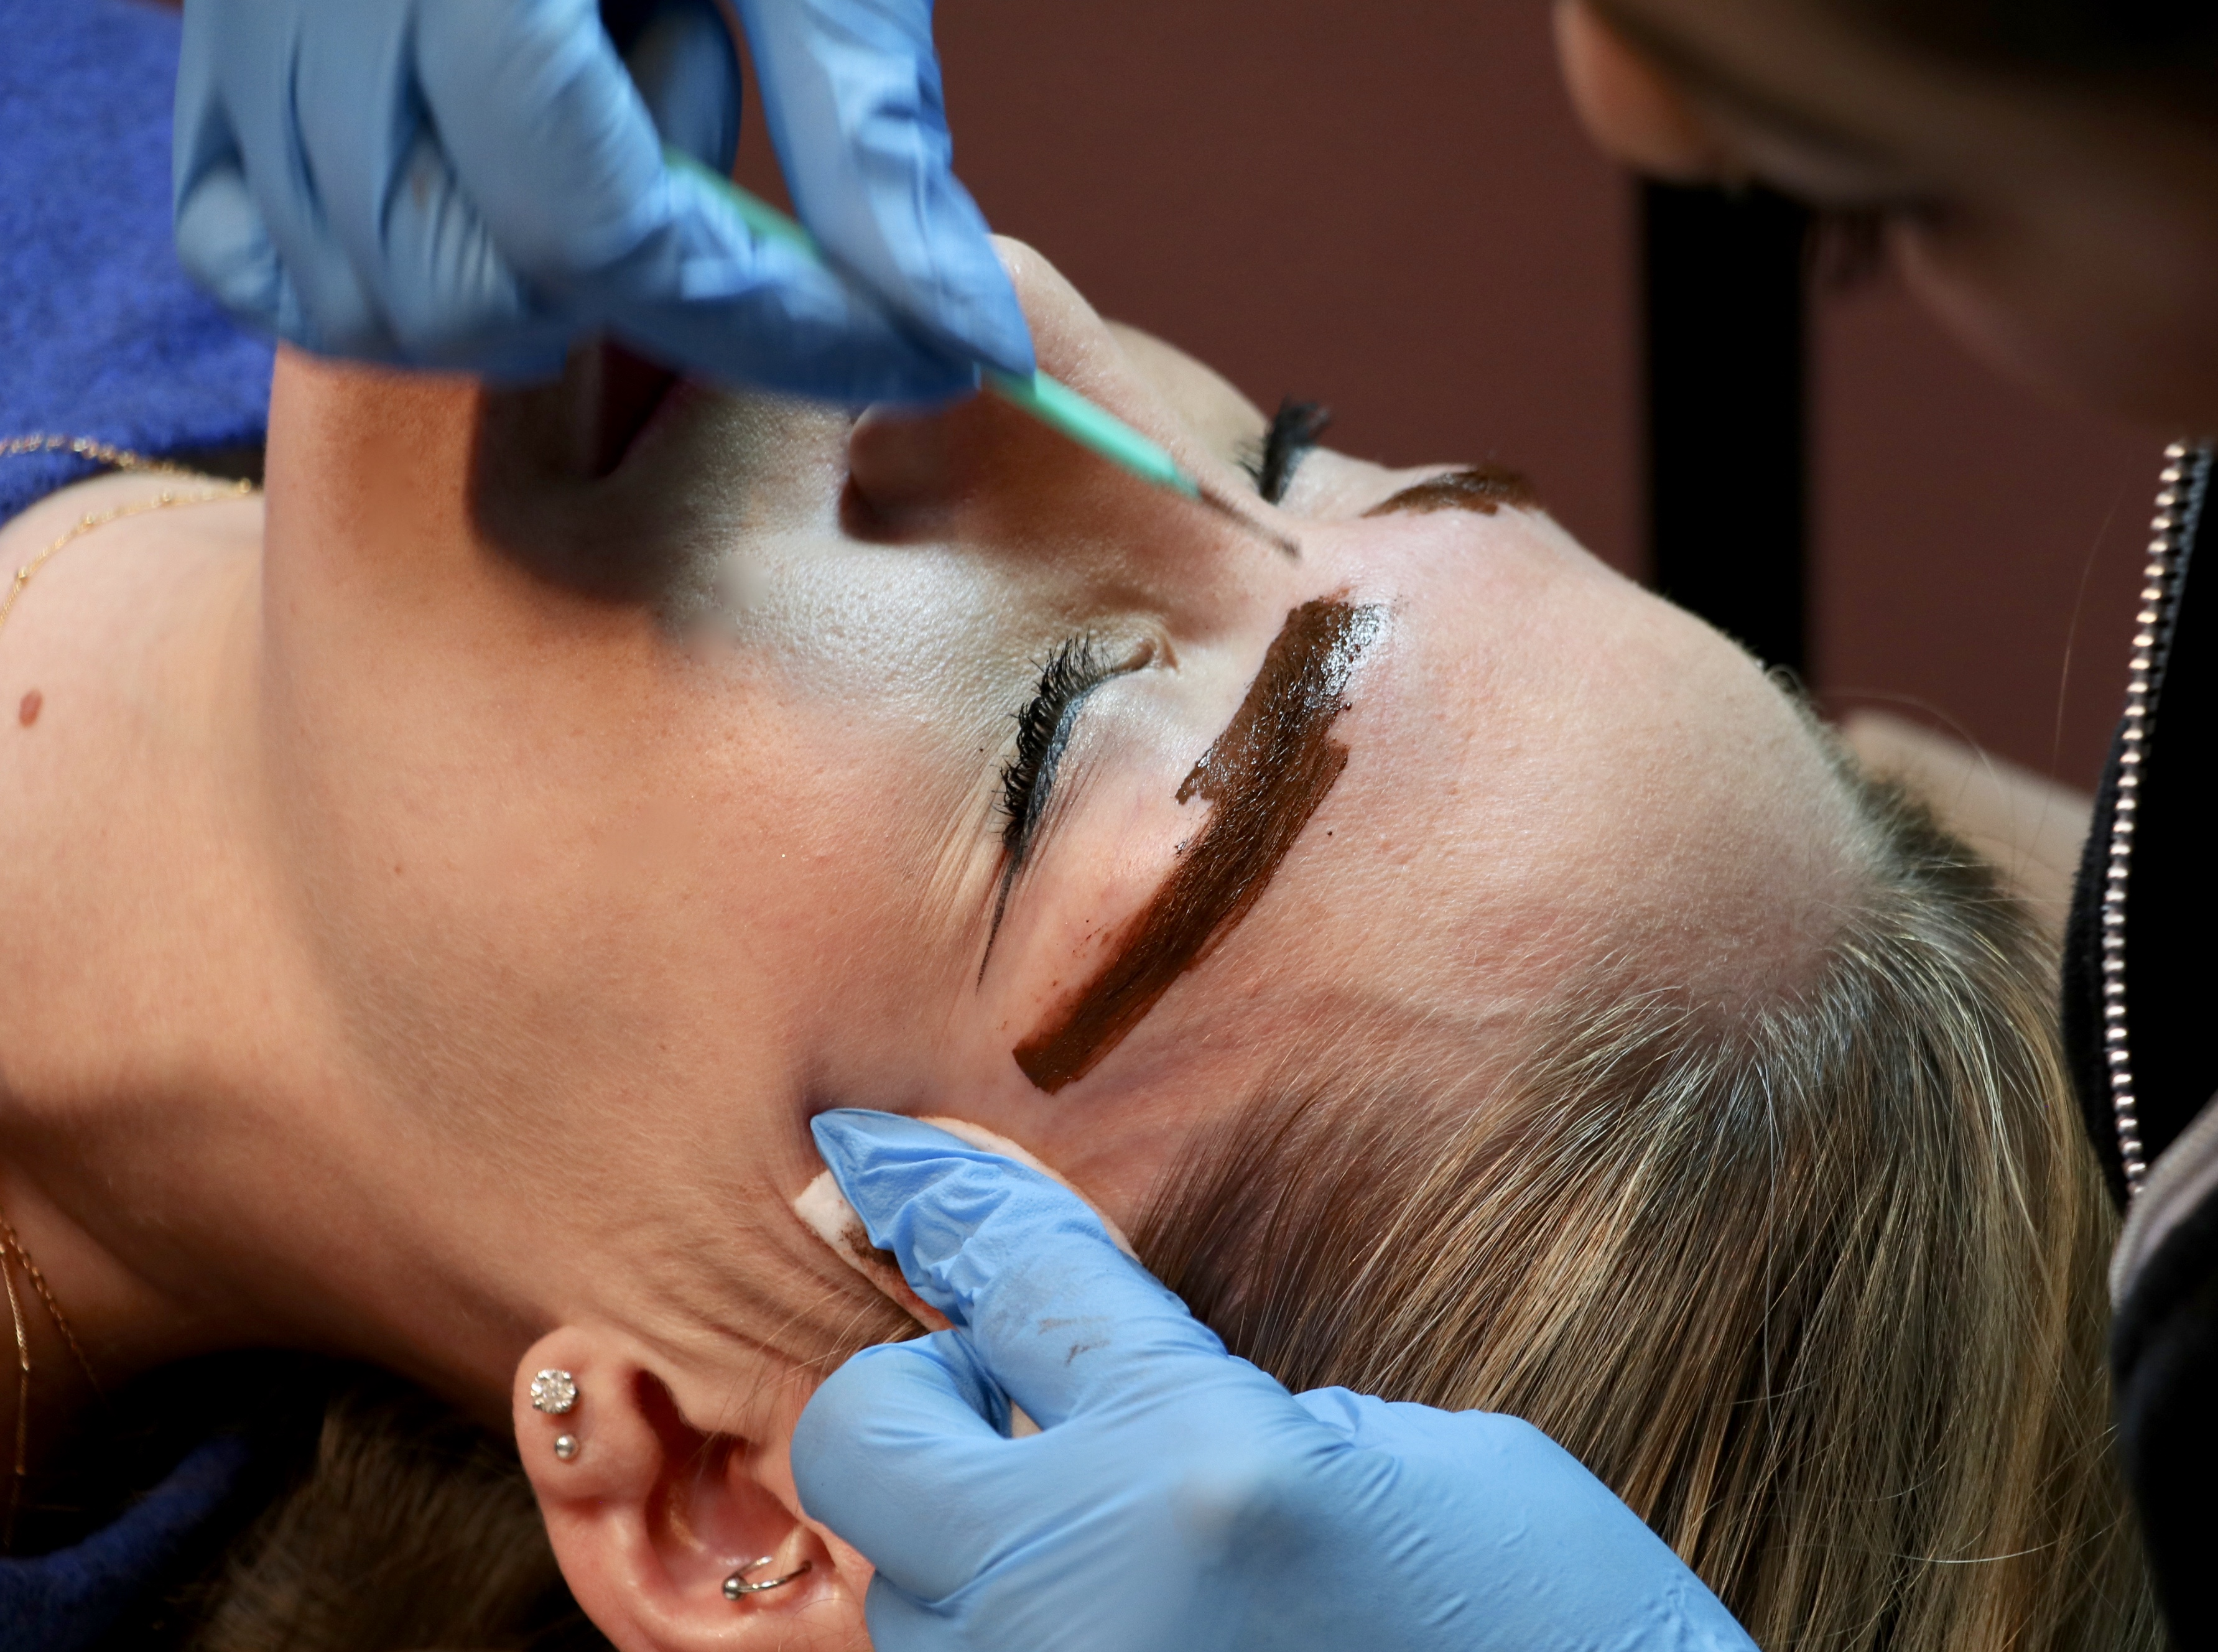 microblading process review